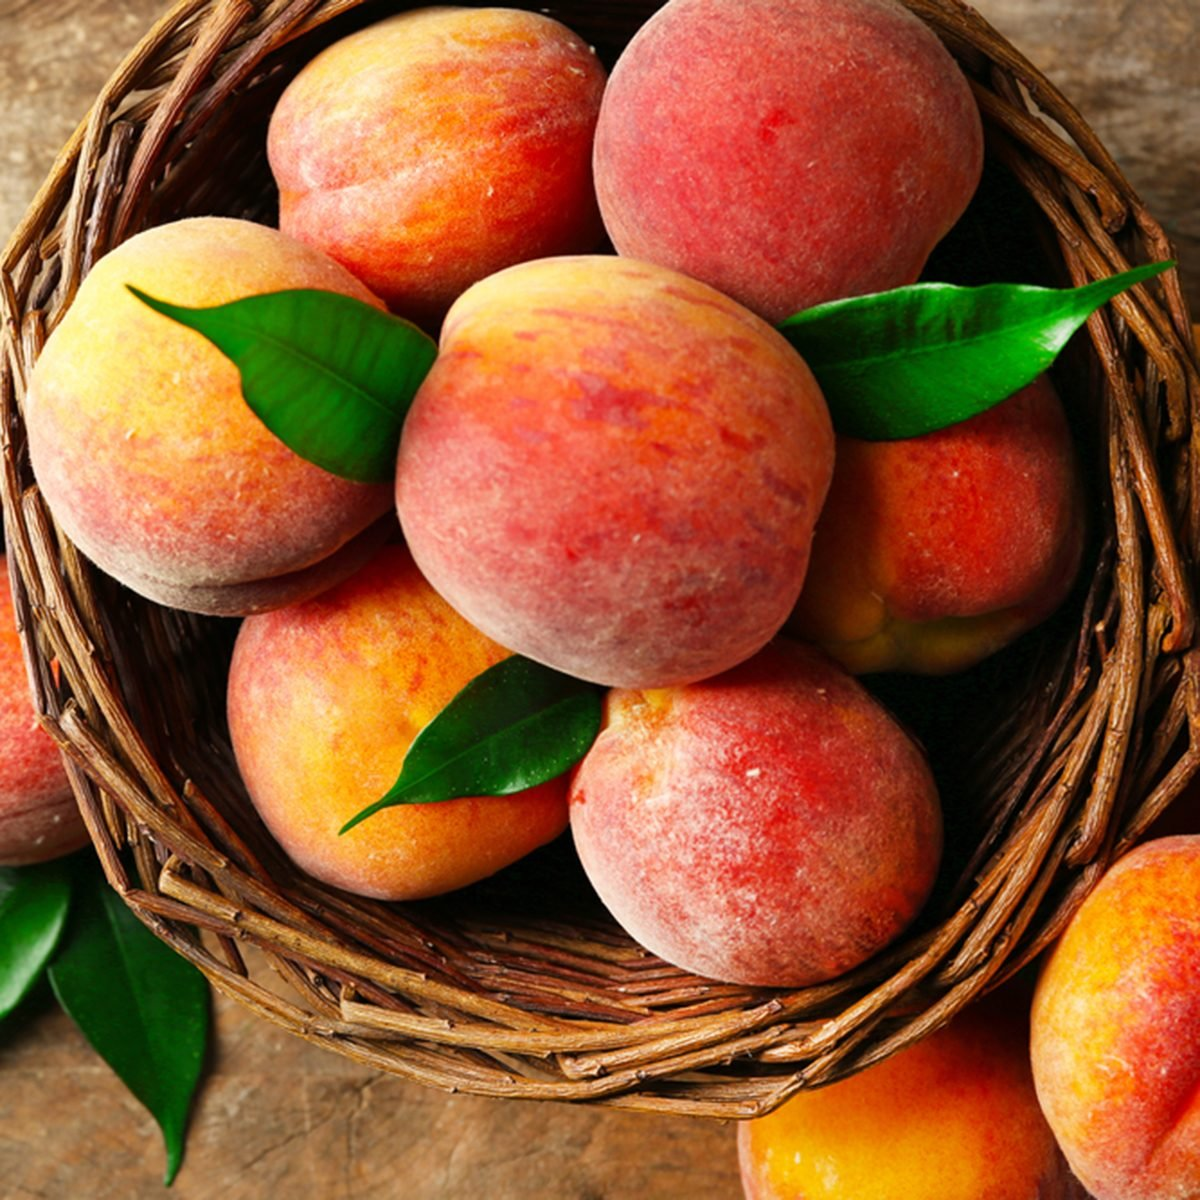 Ripe peaches in basket on wooden background